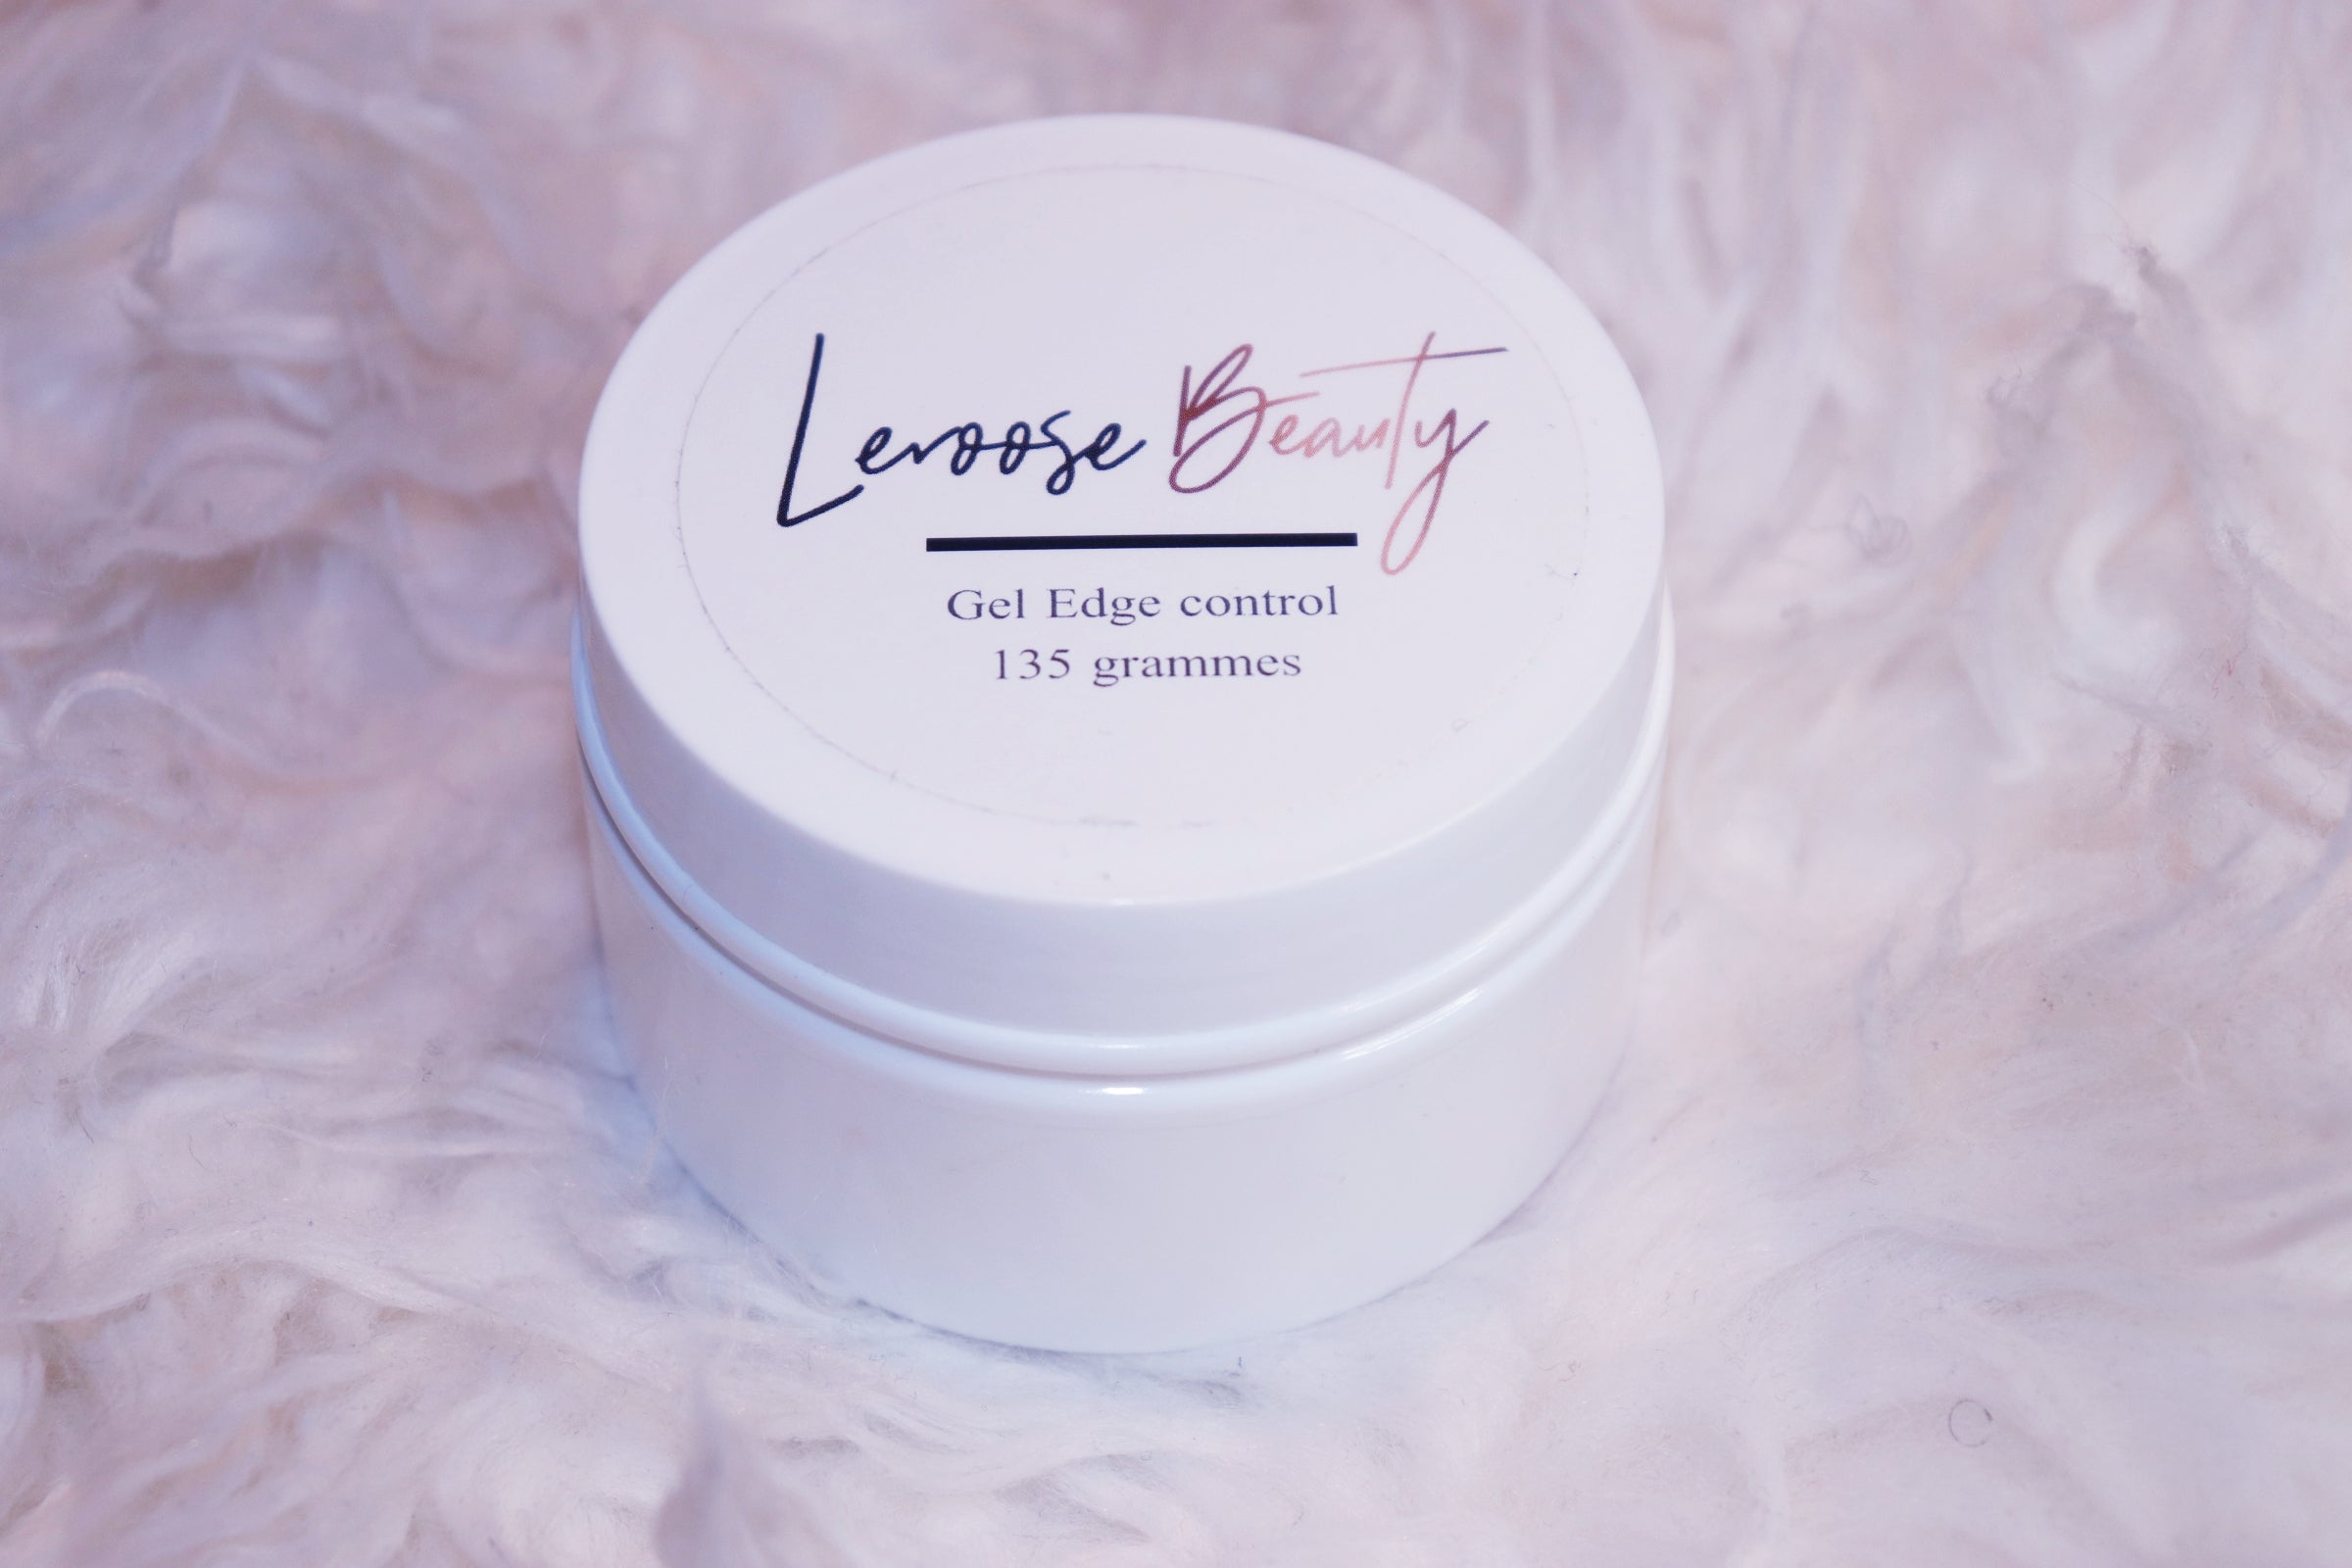 Gel Edge control - Leroose Beauty